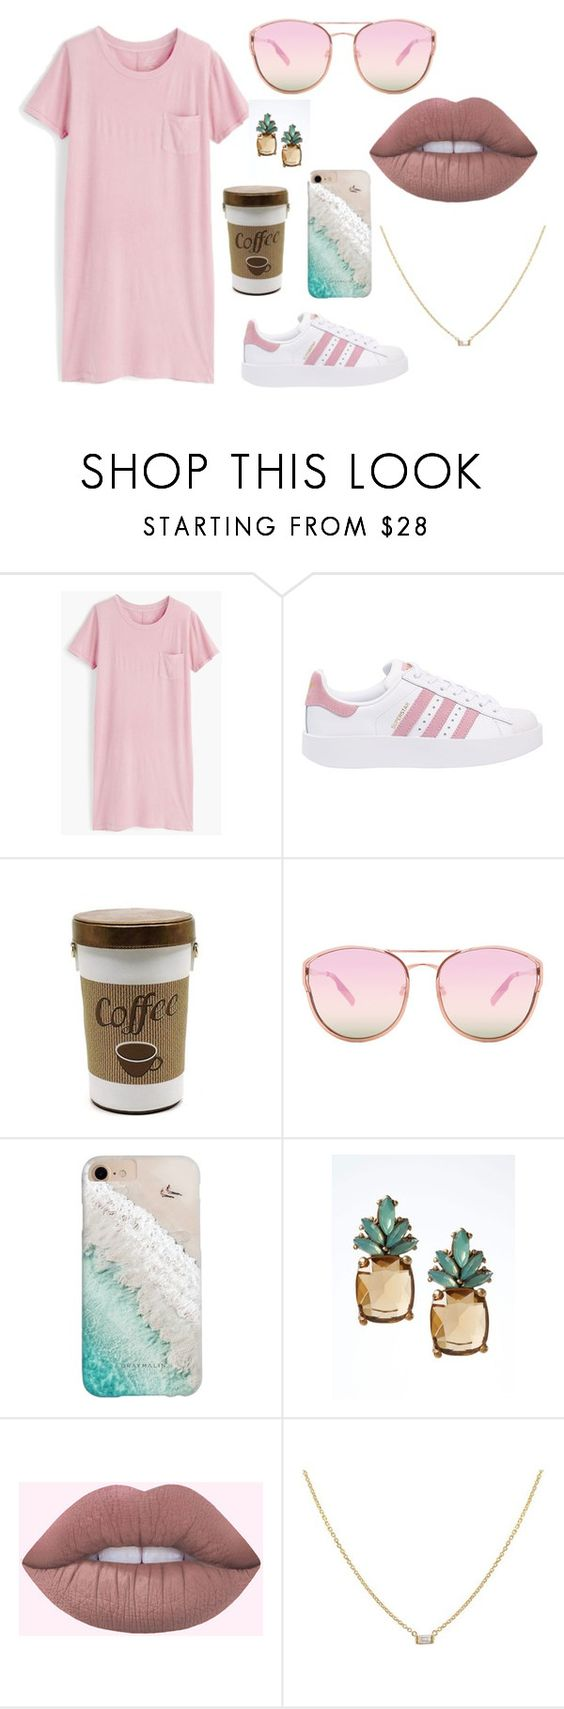 """Untitled #15"" by soninha97 on Polyvore featuring J.Crew, adidas Originals, Quay, Gray Malin and Banana Republic"